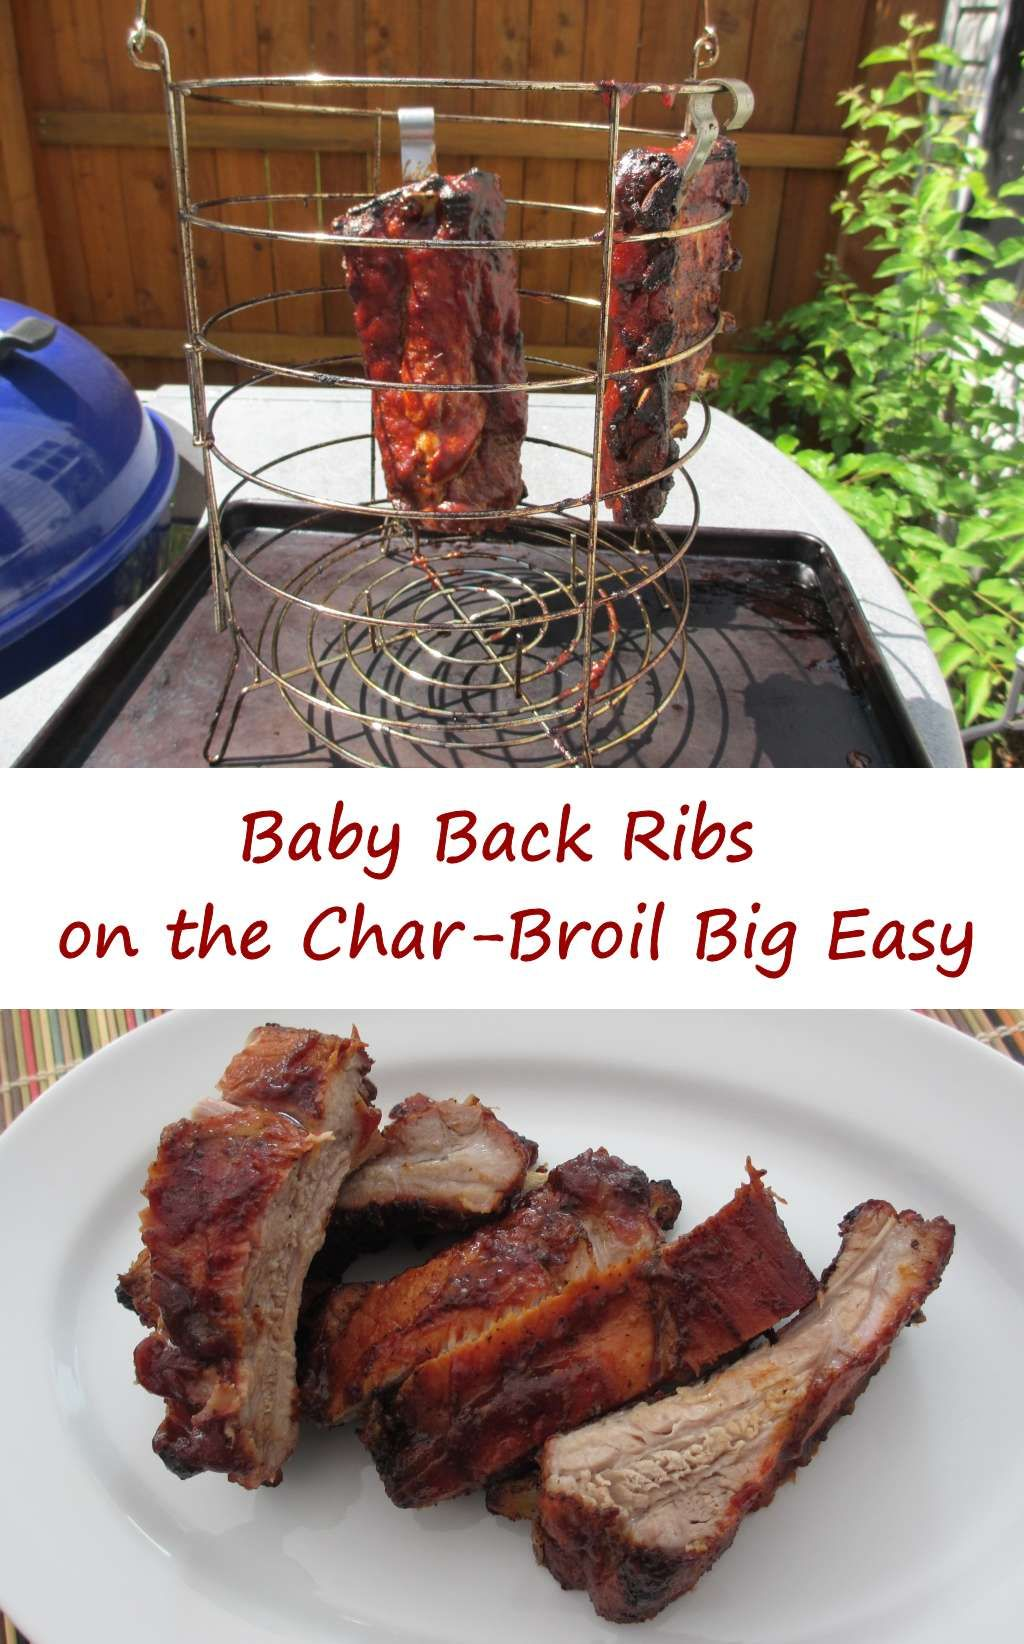 The big easy recipes ribs